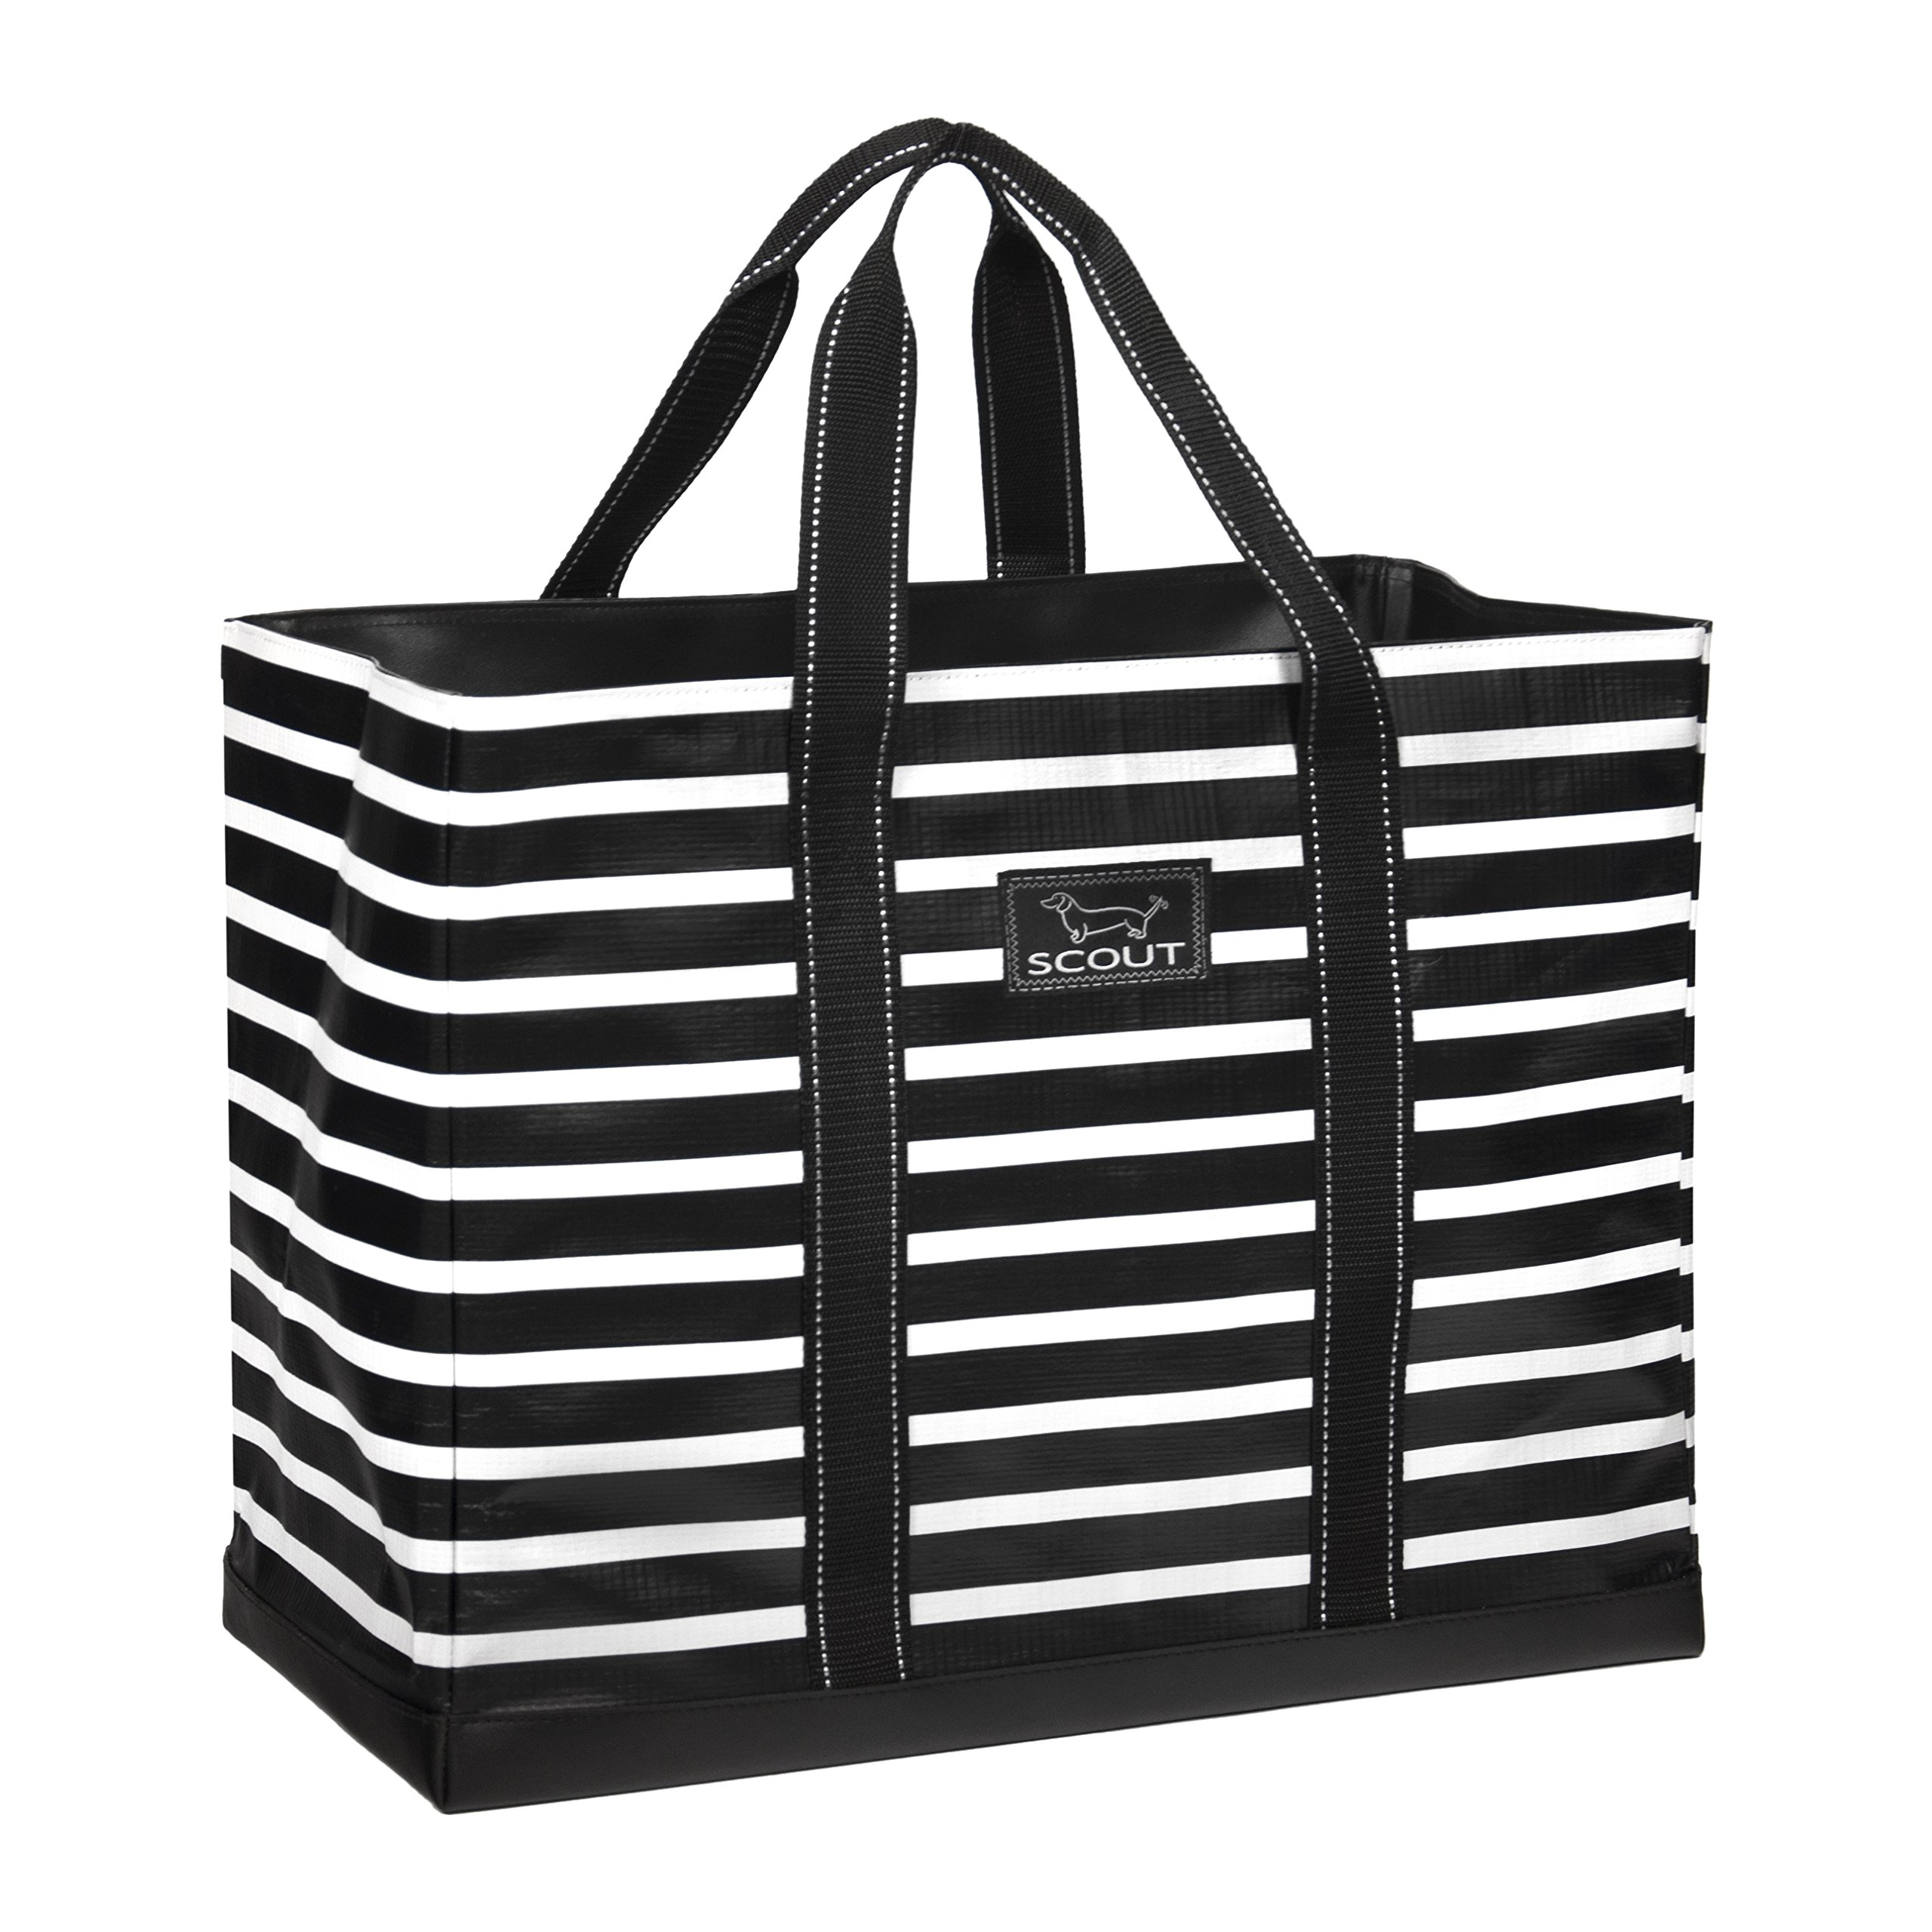 SCOUT Original Deano Large Tote Bag, For The Beach, Pool or Travel, Folds Flat, Water Resistant, Sturdy Base, Interior Key Ring, Fleetwood Black